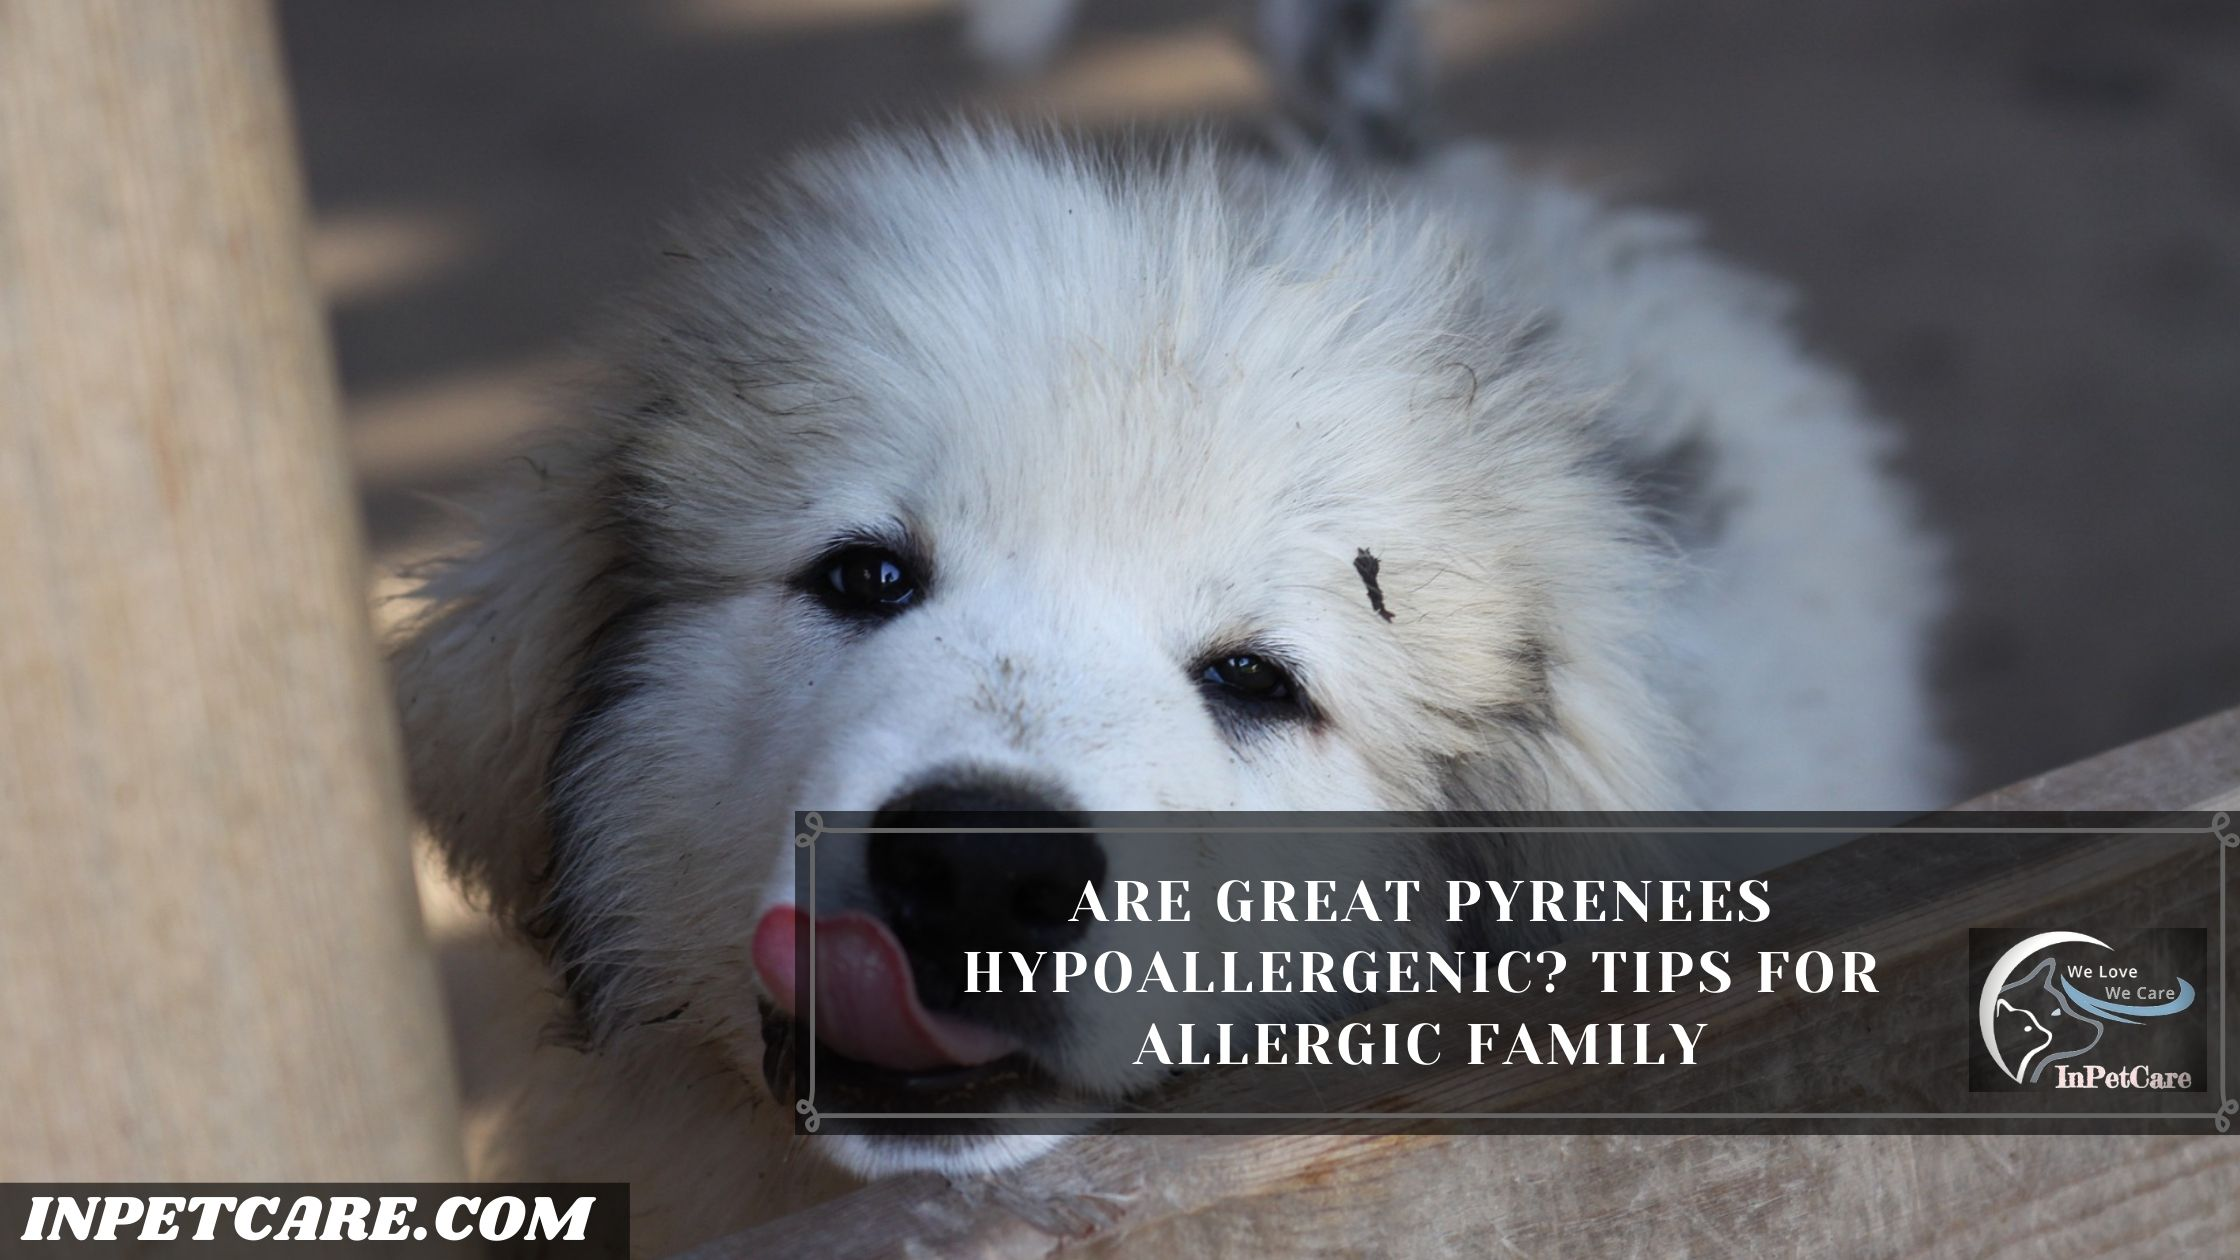 Are Great Pyrenees Hypoallergenic?